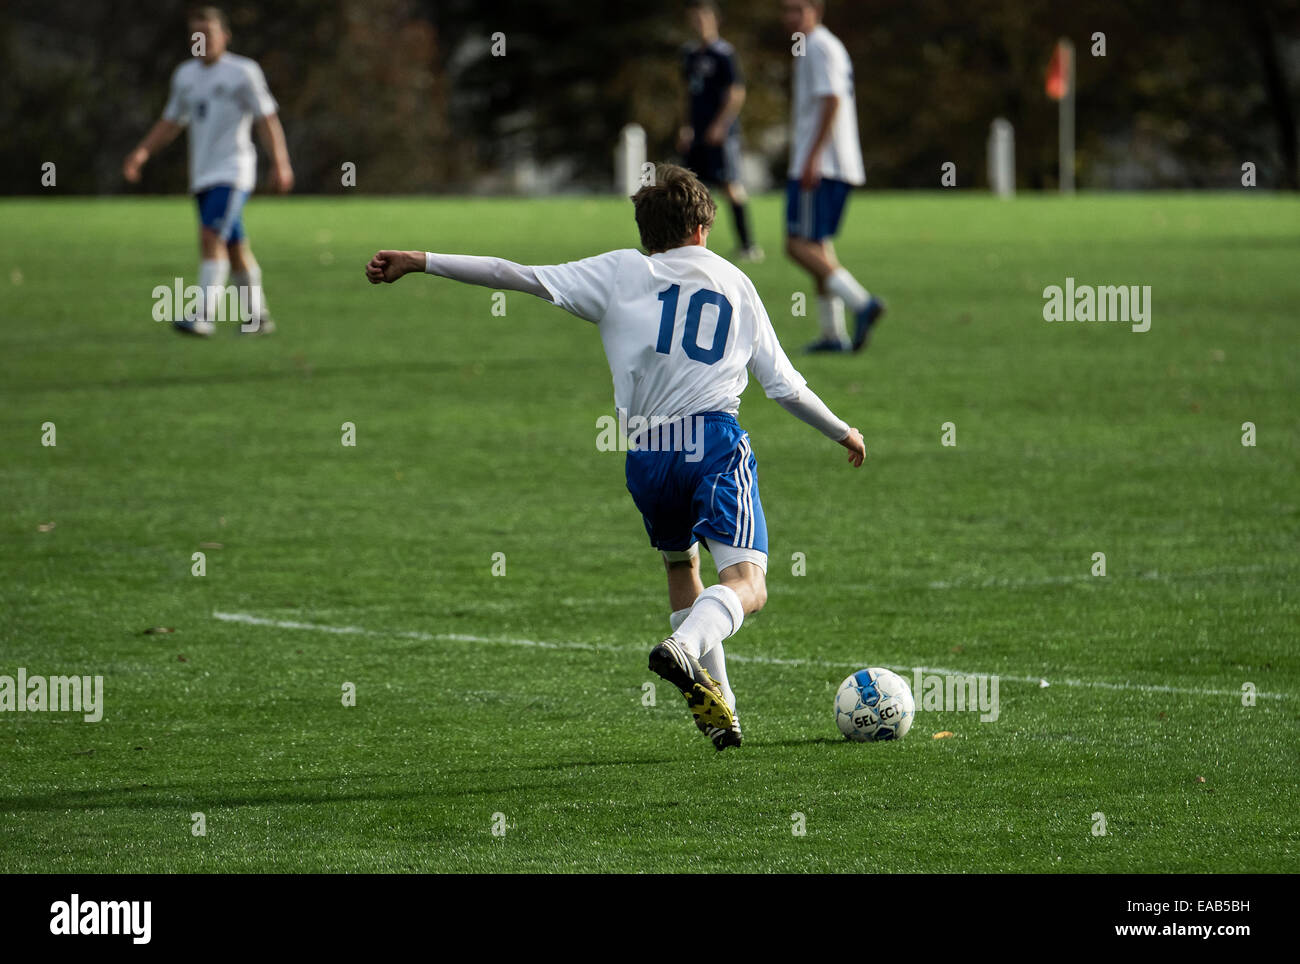 Youth soccer player takes a free kick during a match game. - Stock Image